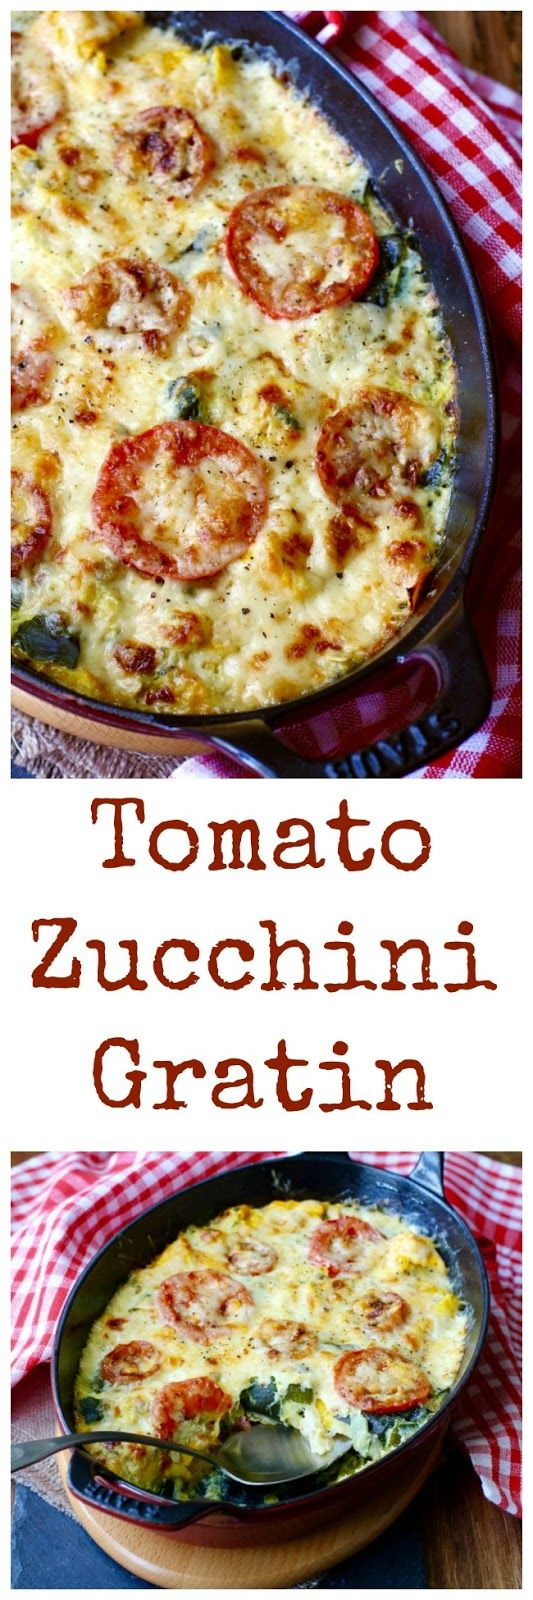 This Zucchini Tomato Gratin is one of my favorite summer dishes. It is really easy to make, and is a great way to use up all of your summer squash bounty.